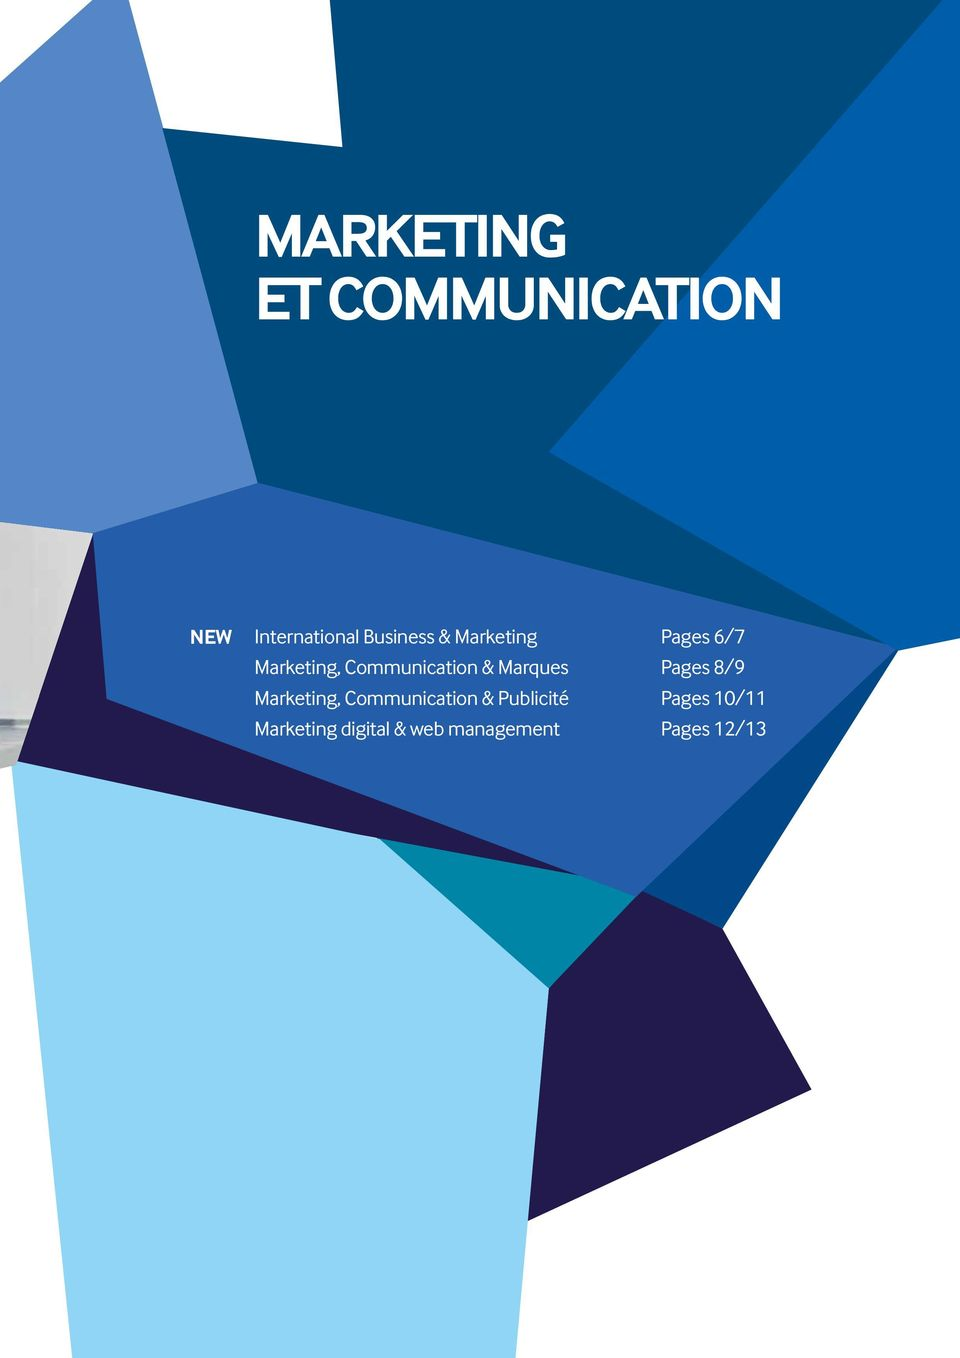 Marques Pages 8/9 Marketing, Communication &